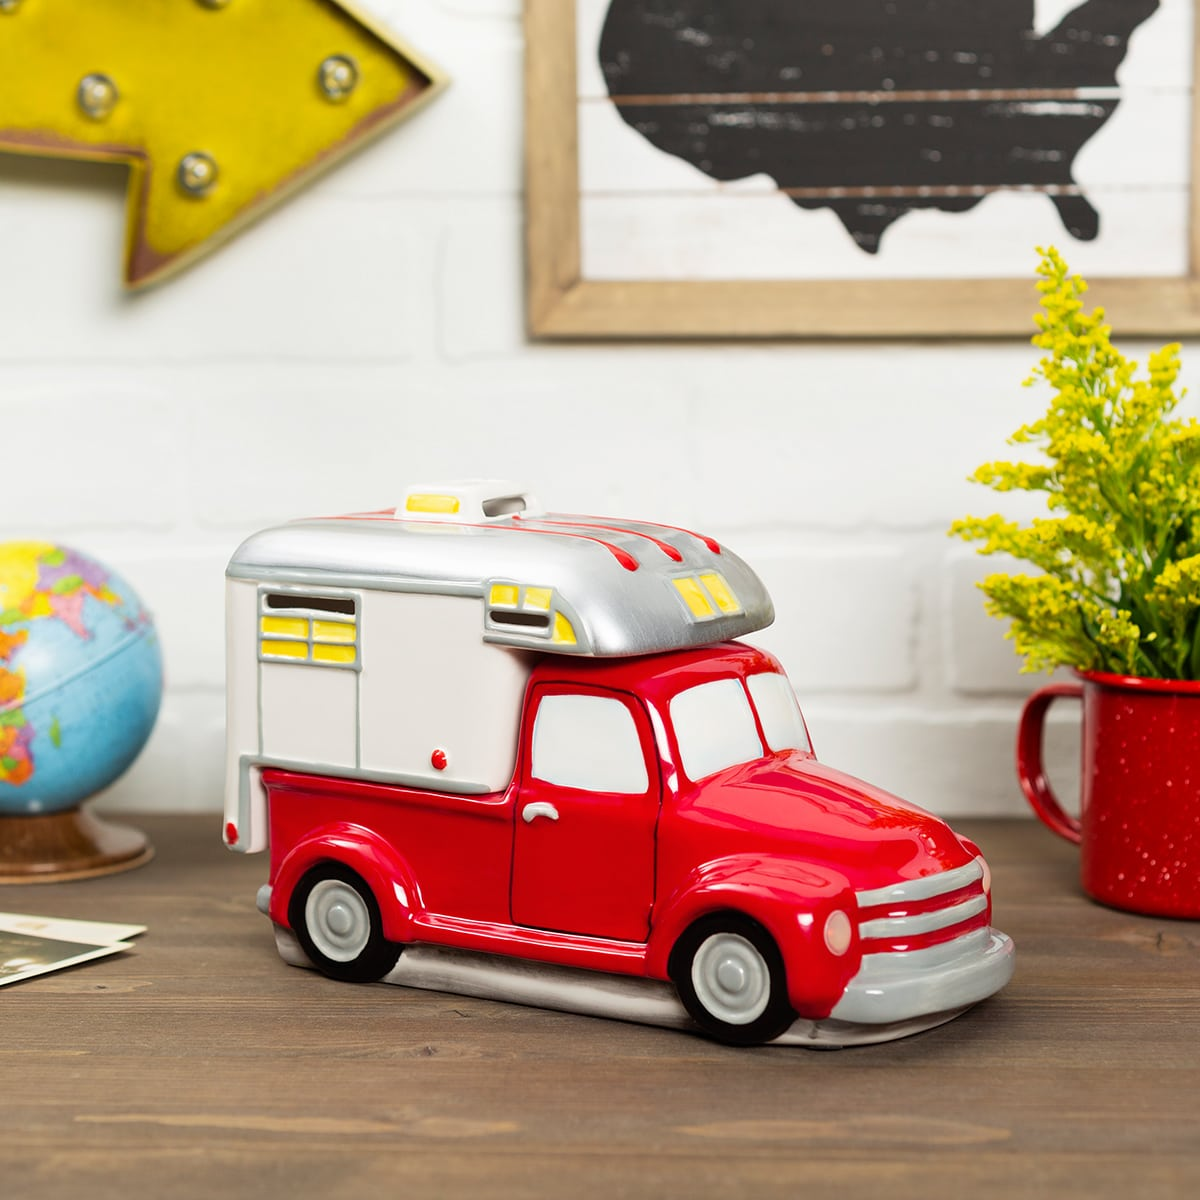 Check out the Scentsy Retro Truck Collection for sale now at getascent.com!